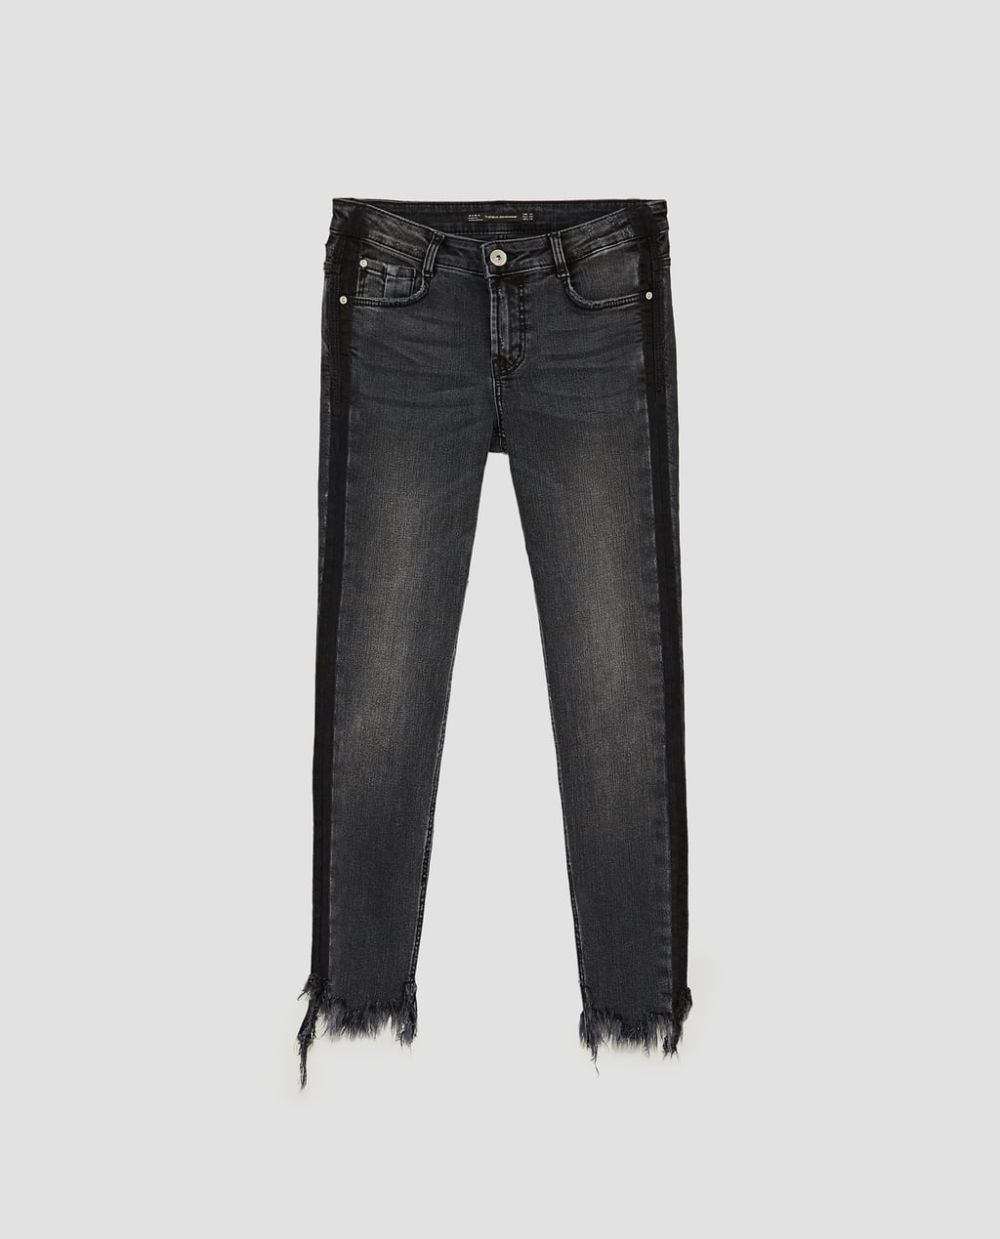 Denim de Zara (25,95 euros)